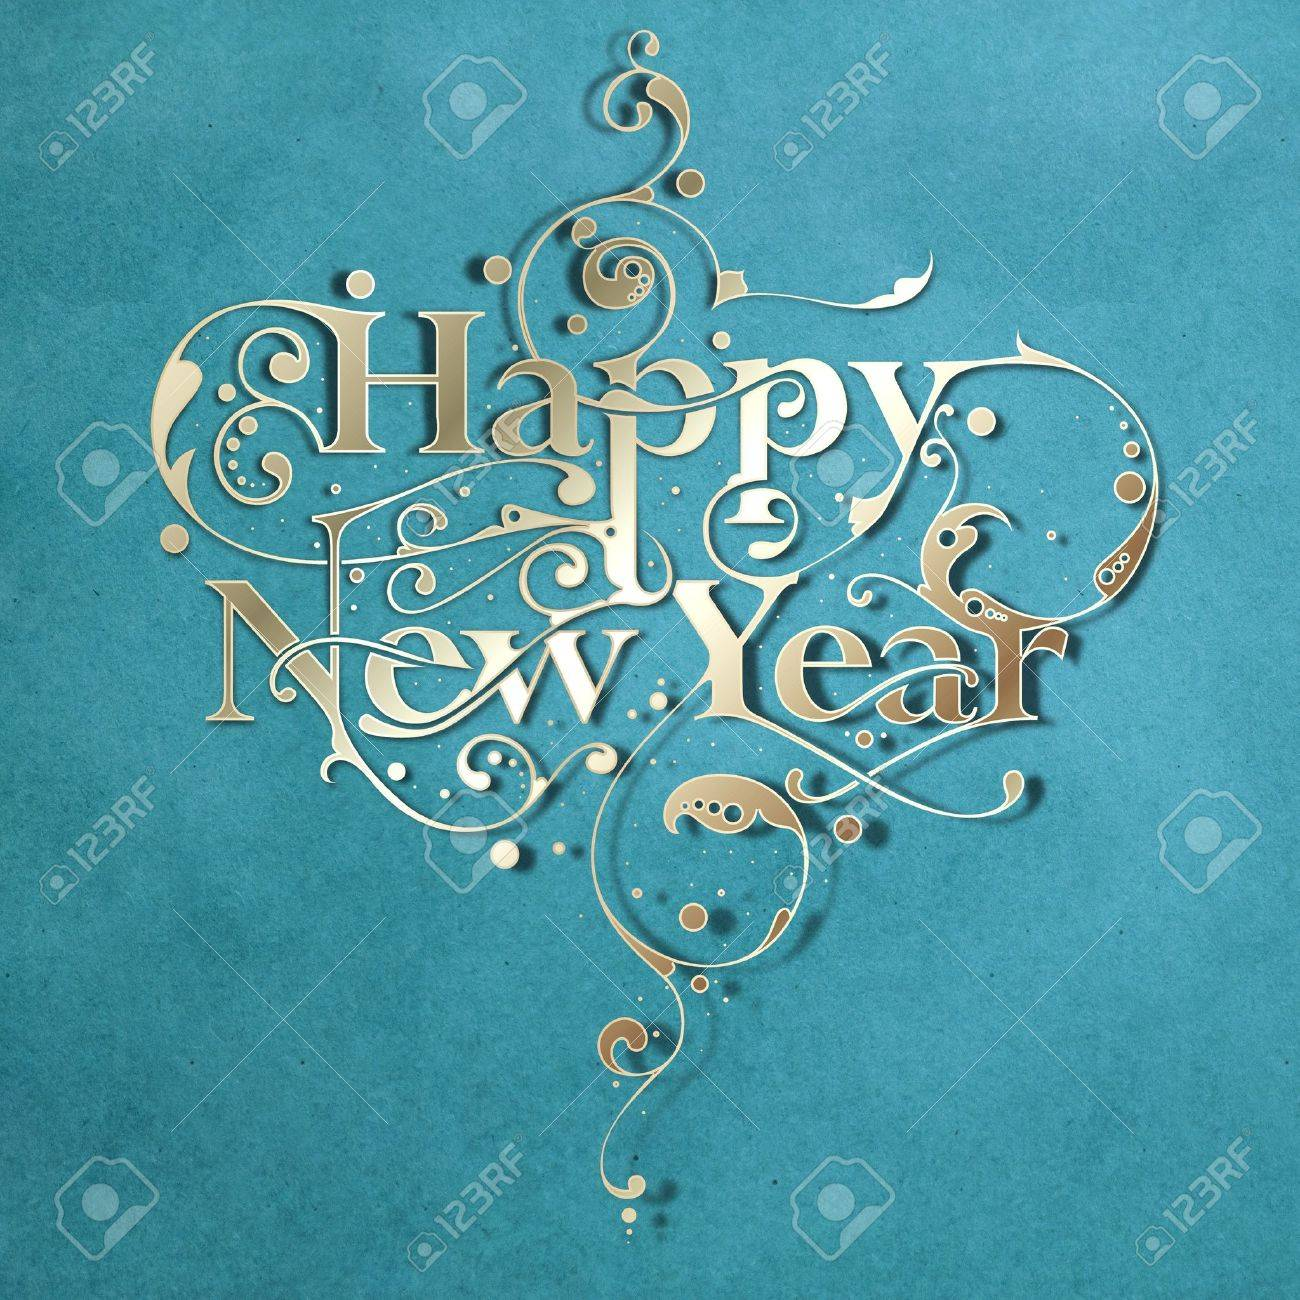 Happy New Year Card Images & Stock Pictures. Royalty Free Happy ...